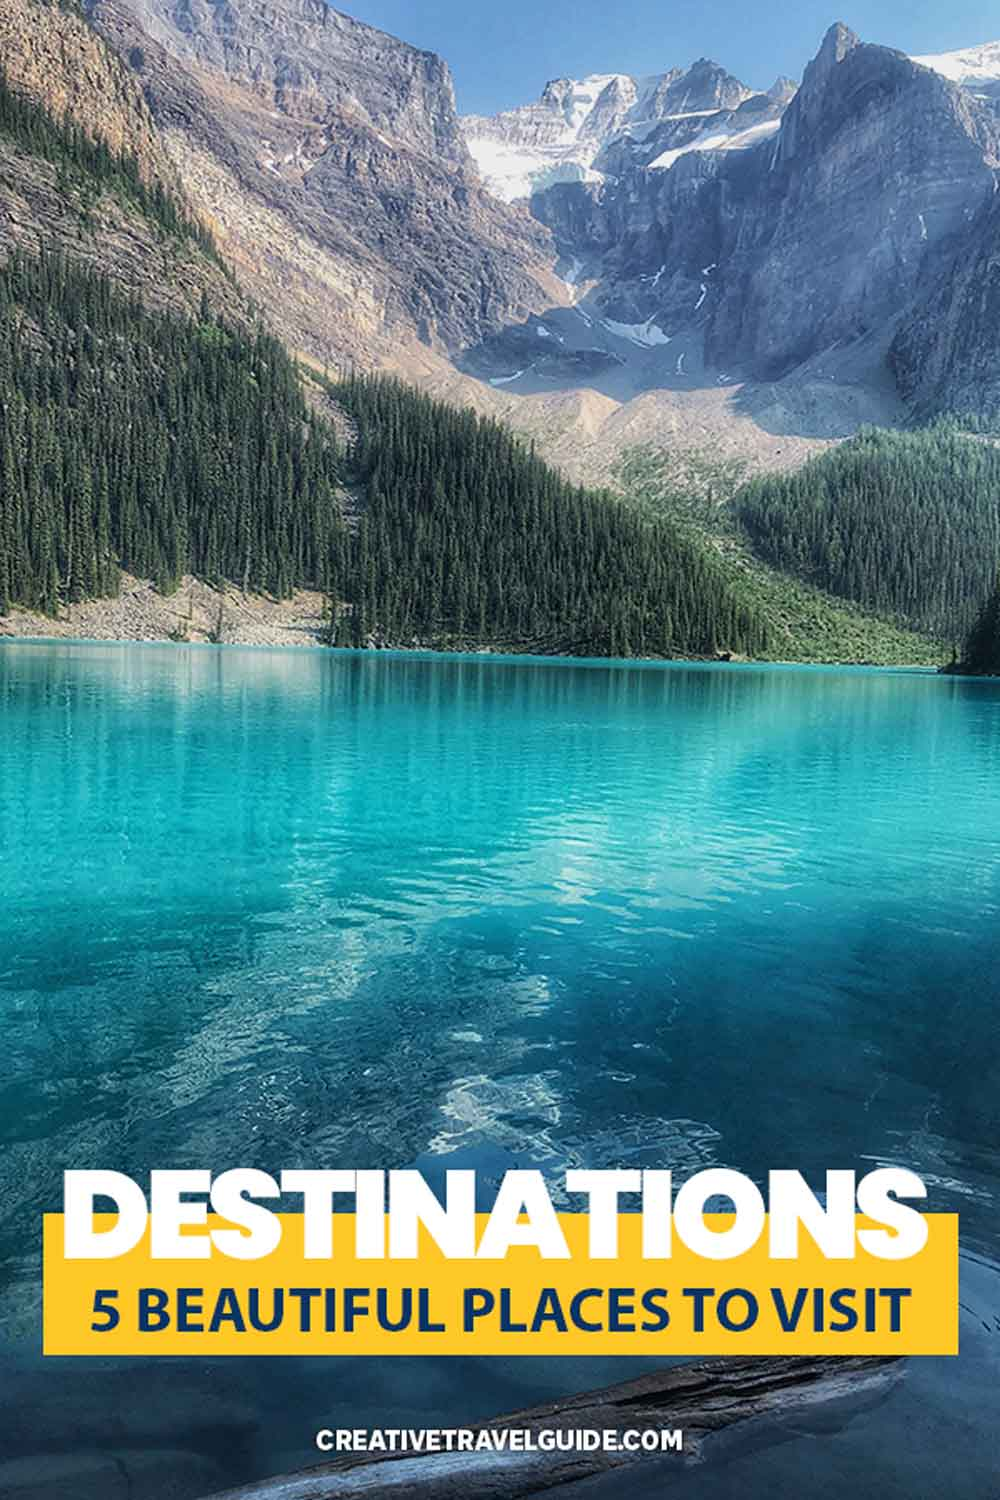 Beautiful travel destinations